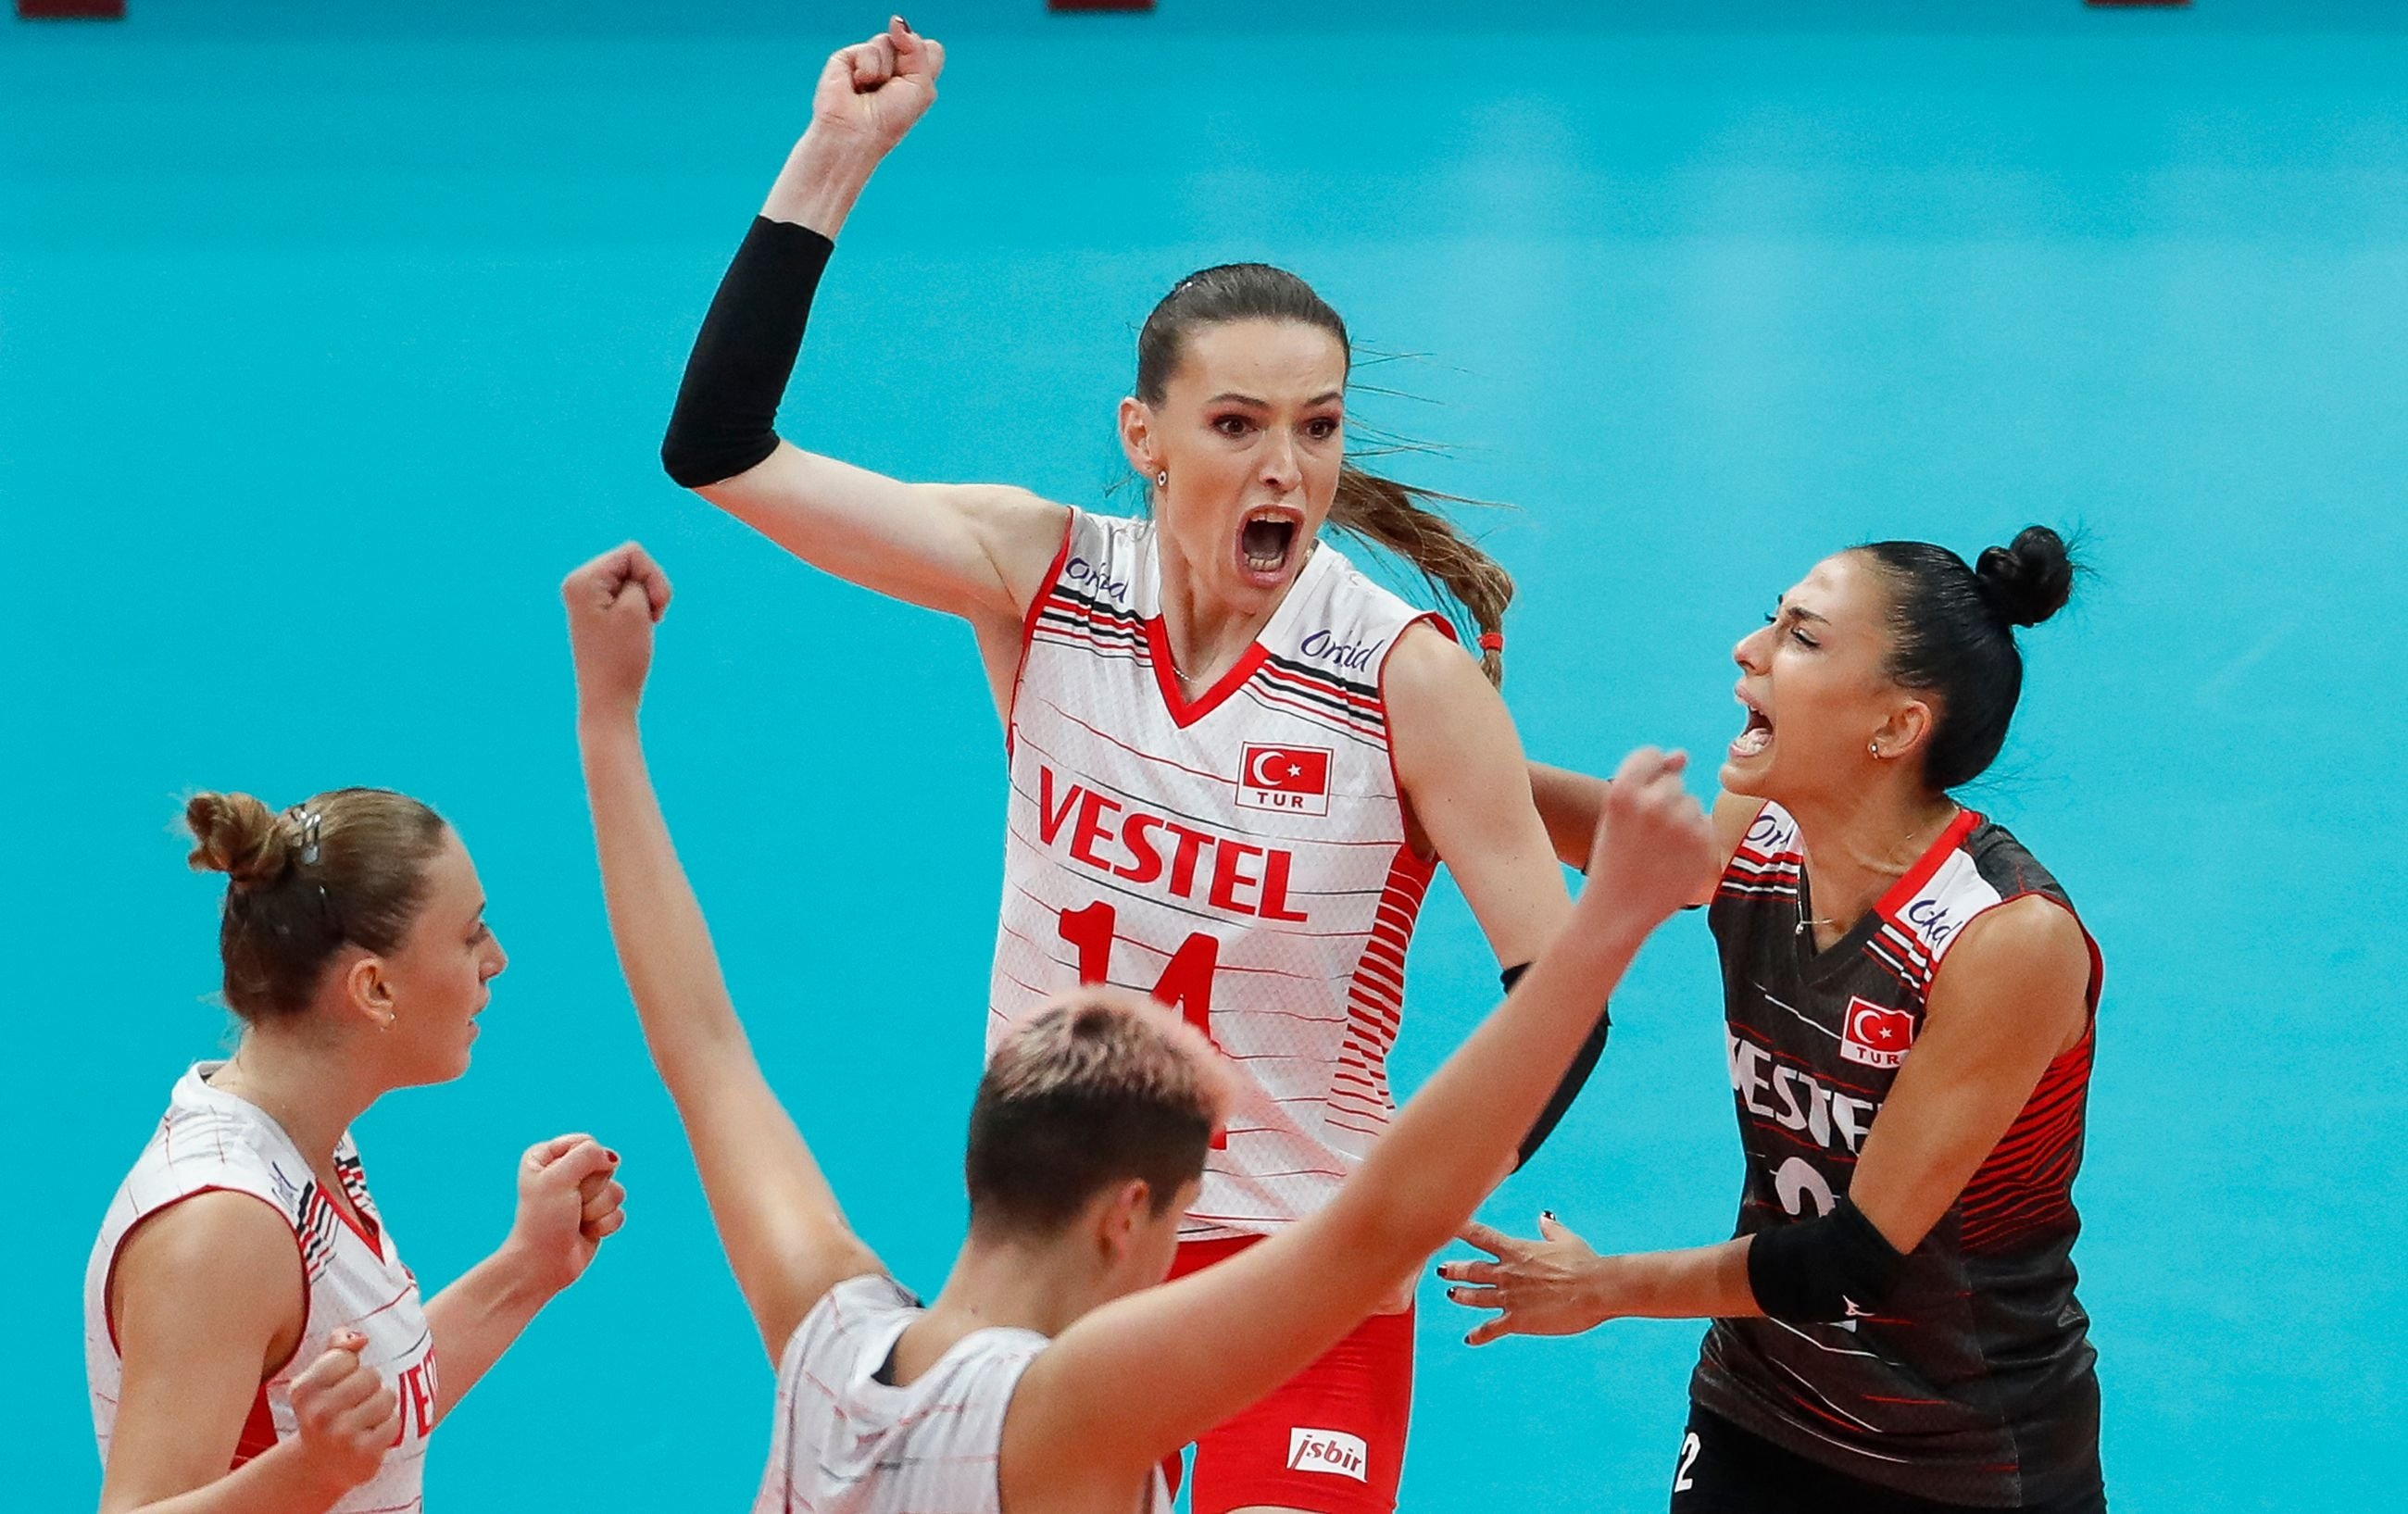 Turkey's Eda Erdem Dündar (C) and other players celebrate during the 2021 women's CEV EuroVolley semifinal volleyball match between Turkey and Serbia in Belgrade, Sept. 3, 2021. (AFP Photo)